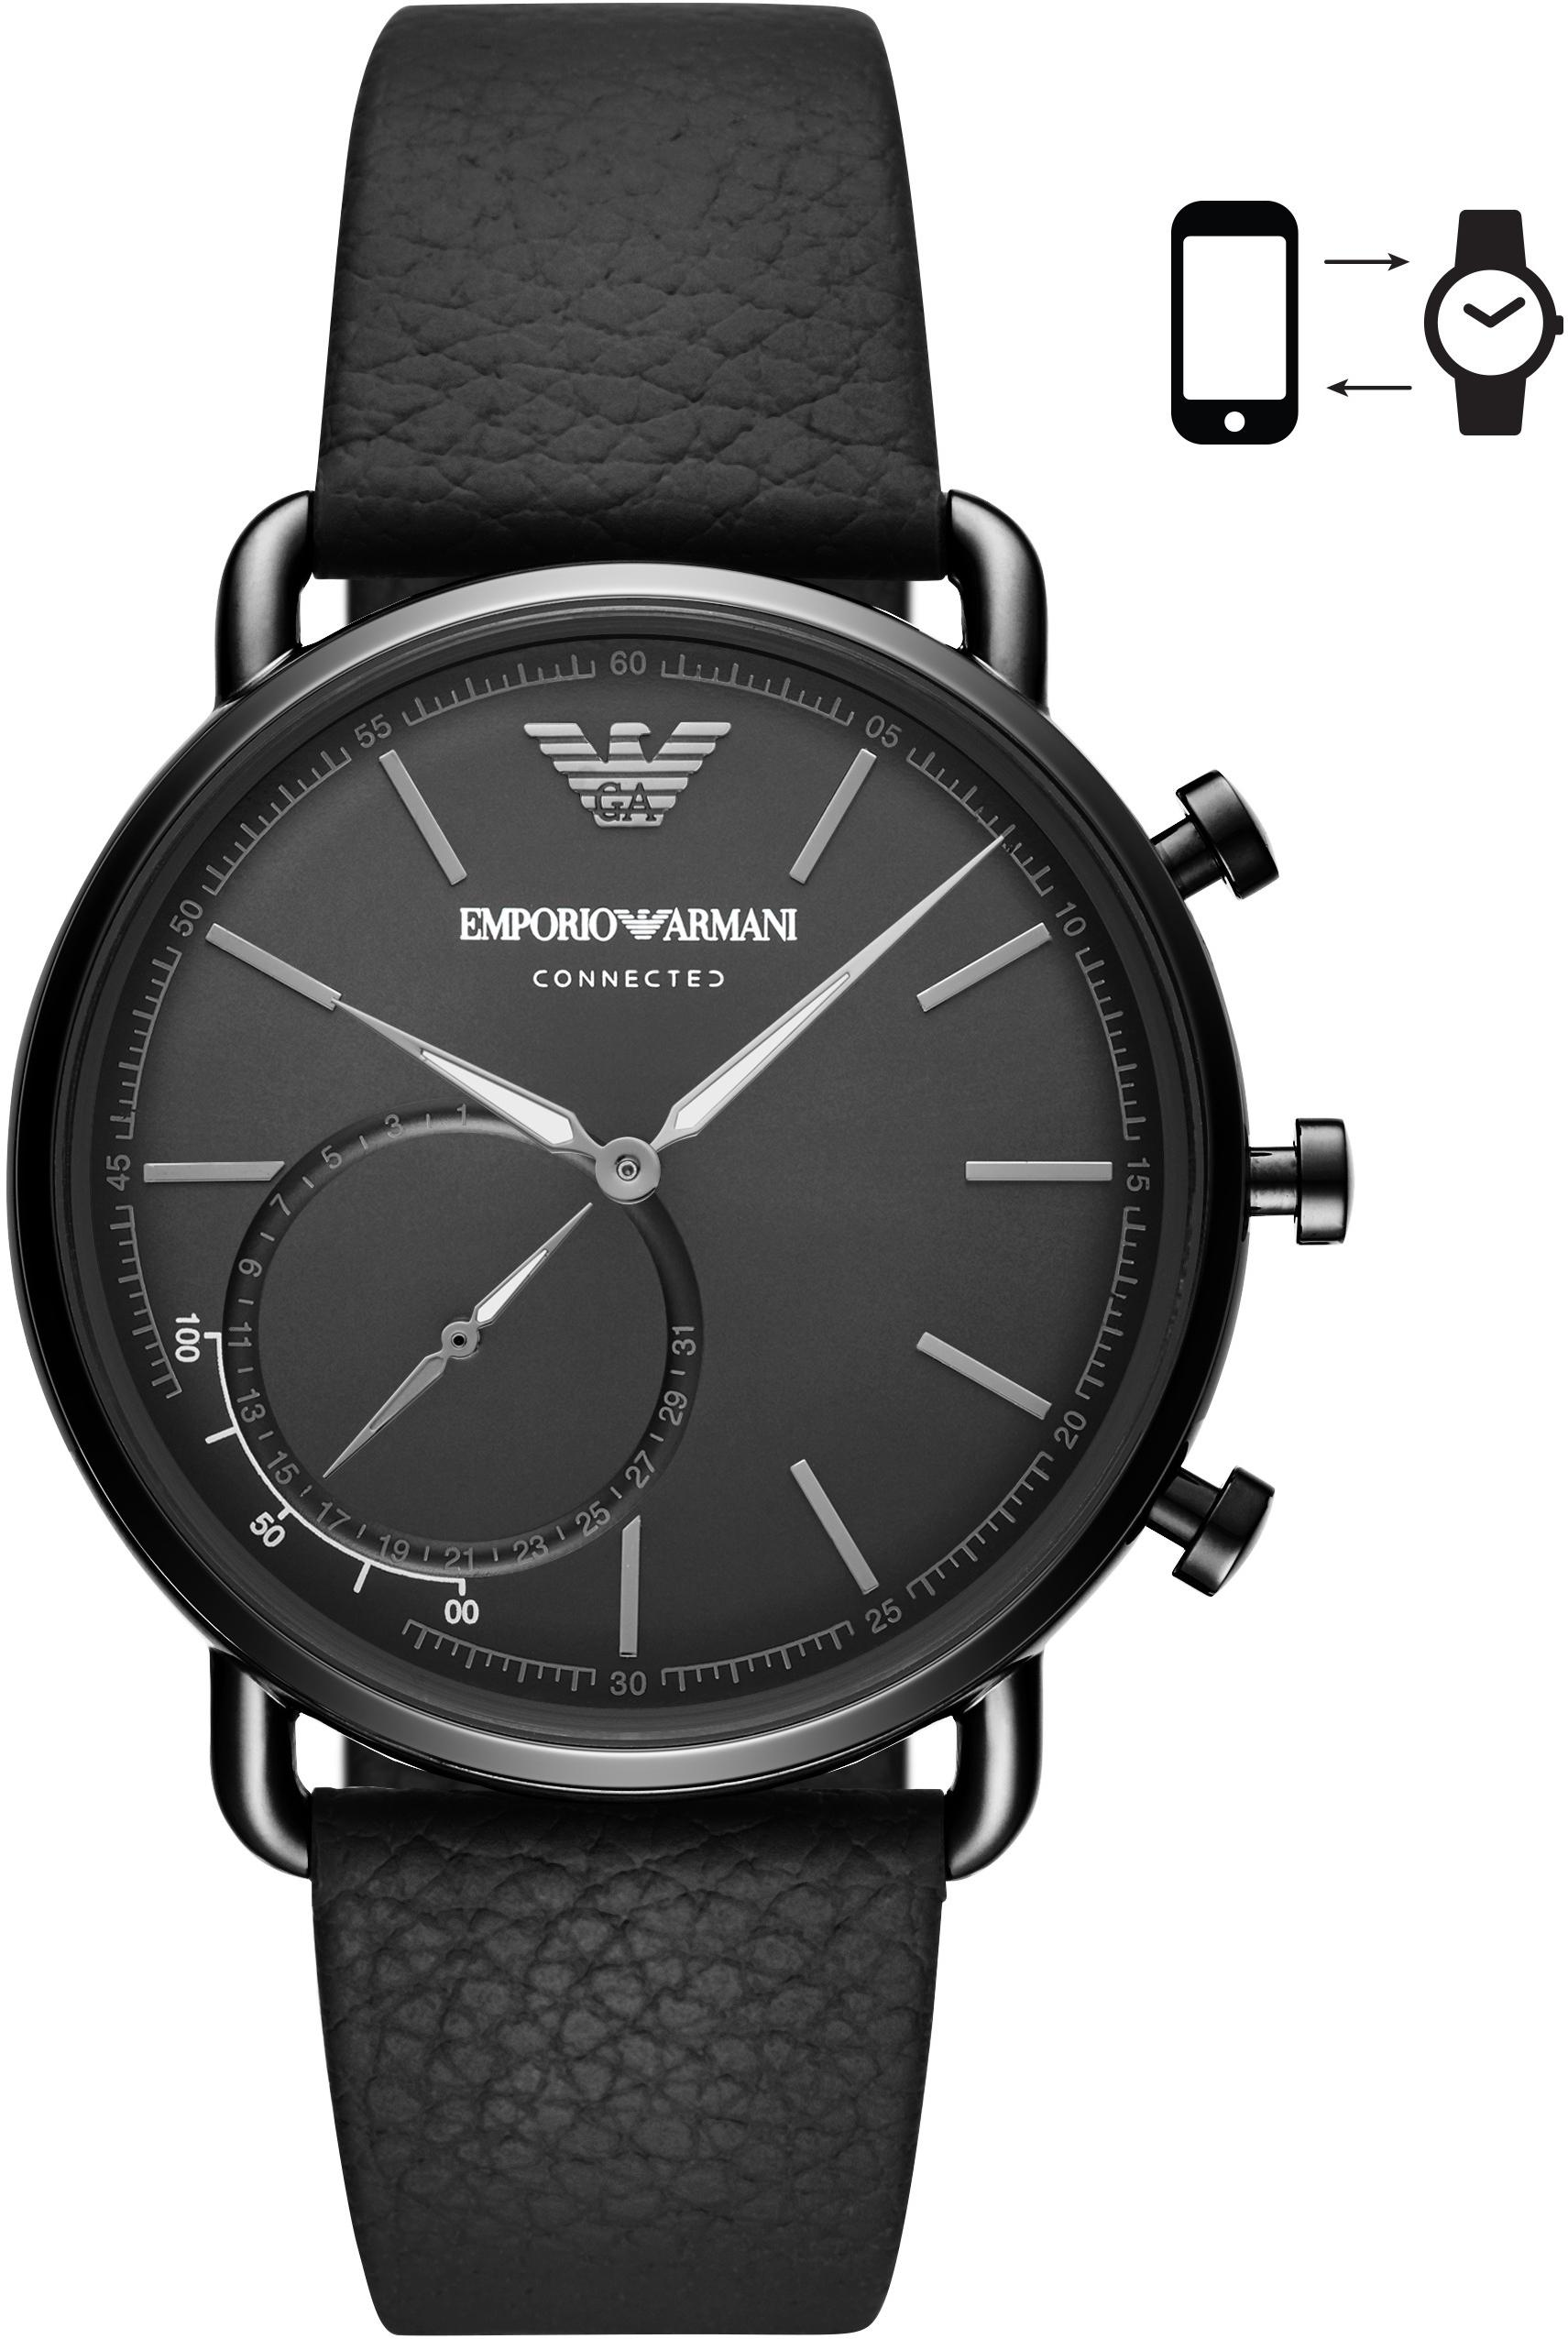 EMPORIO ARMANI CONNECTED ART3030 Smartwatch | Uhren > Smartwatches | Emporio Armani Connected